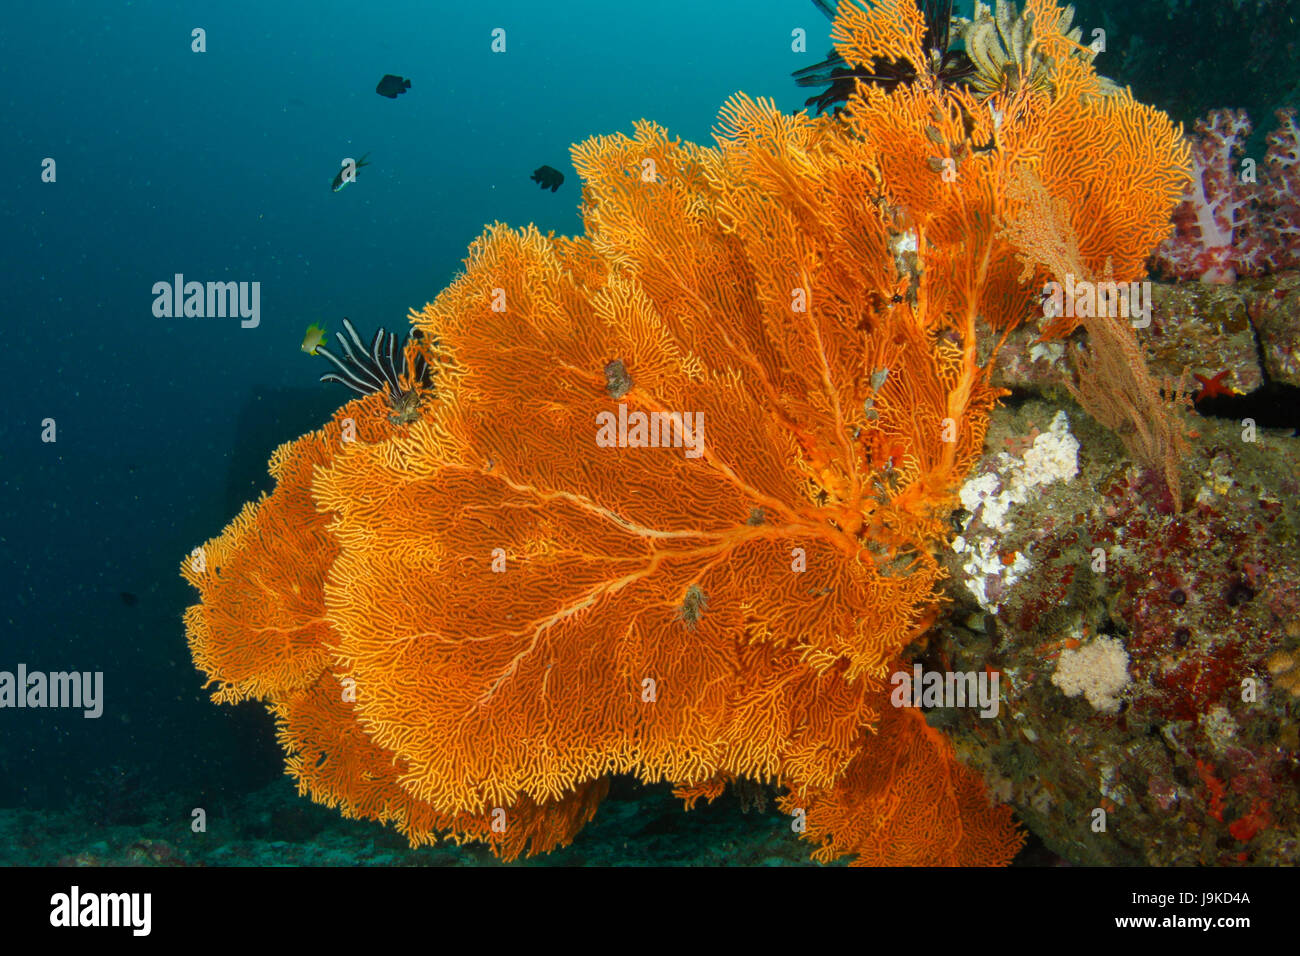 Giant orange gorgonian sea fans in full bloom hanging on a wall in the deep blue water in Similan, Thailand - Stock Image